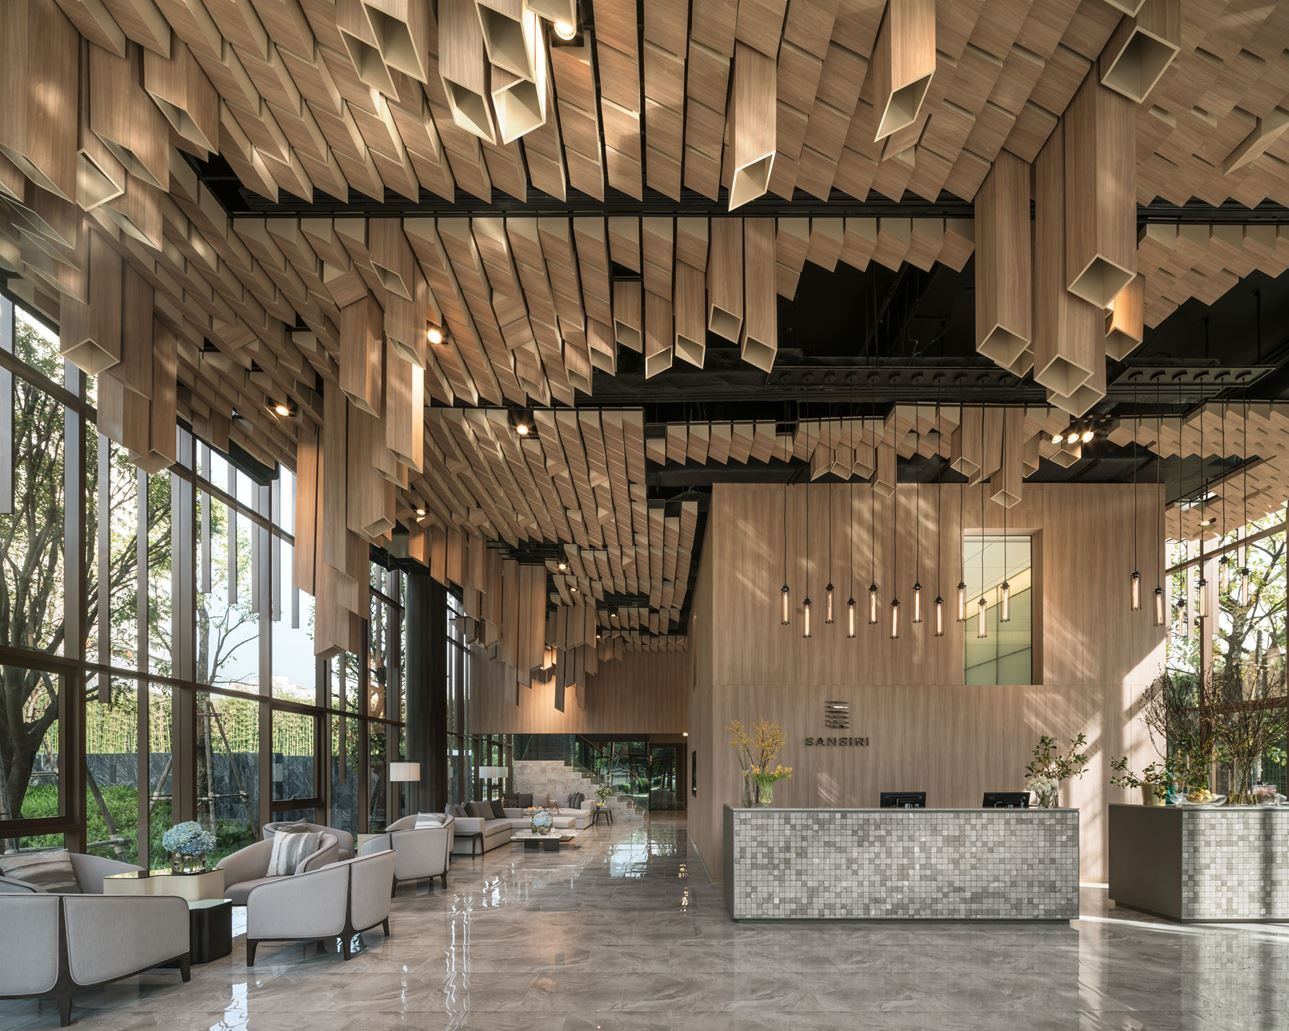 Oka Haus Picture Gallery Lobby Design Architecture Ceiling Hotel Interiors